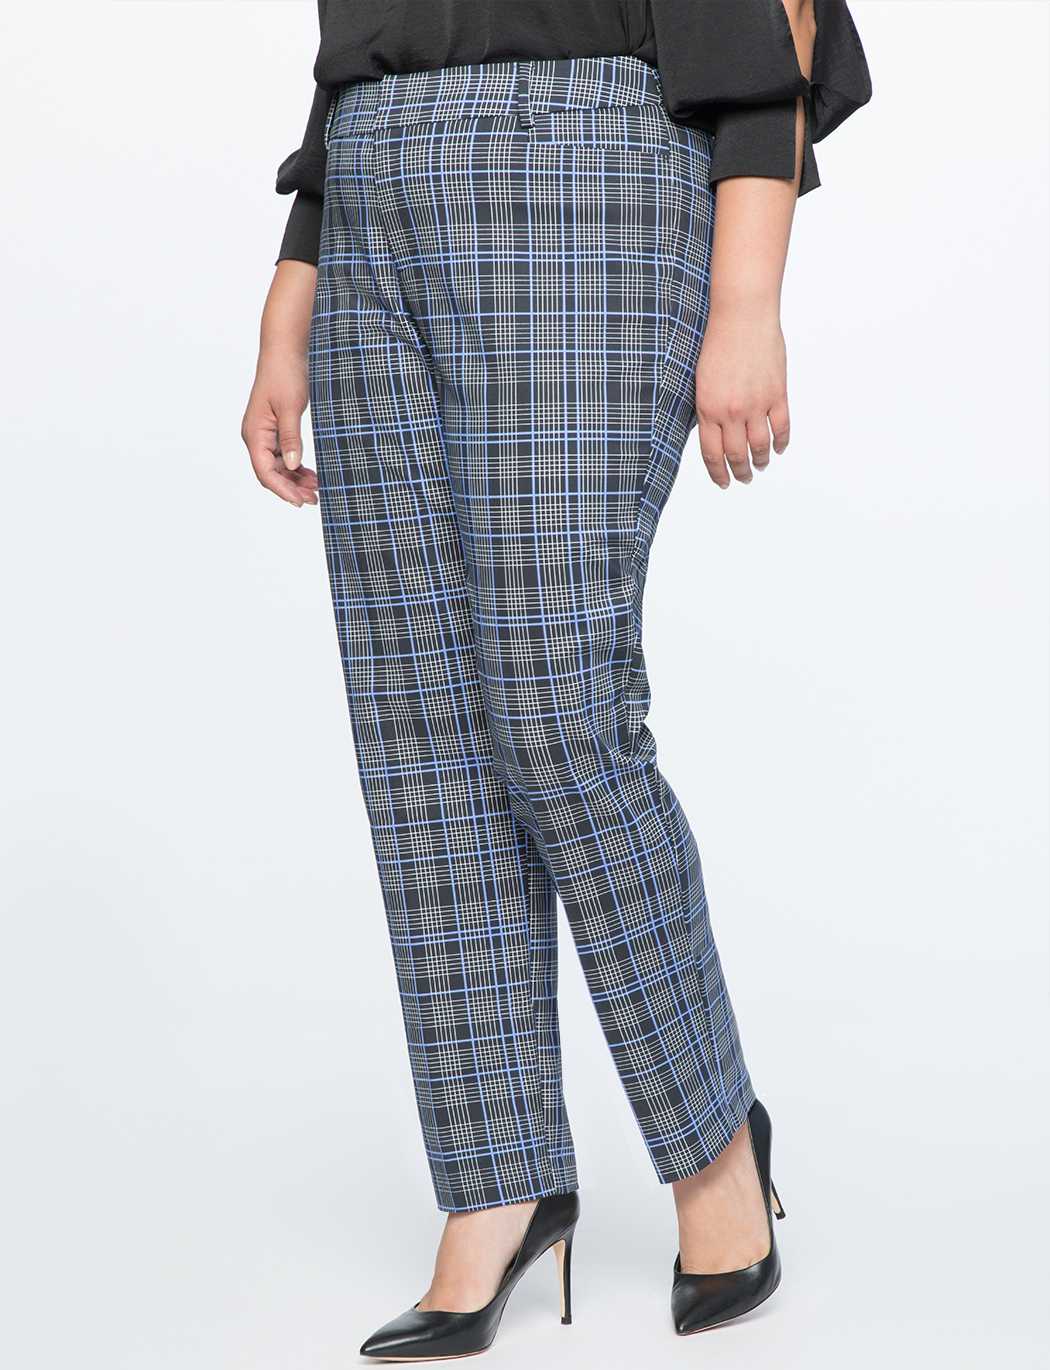 Kady Fit Double-Weave Plaid Pant